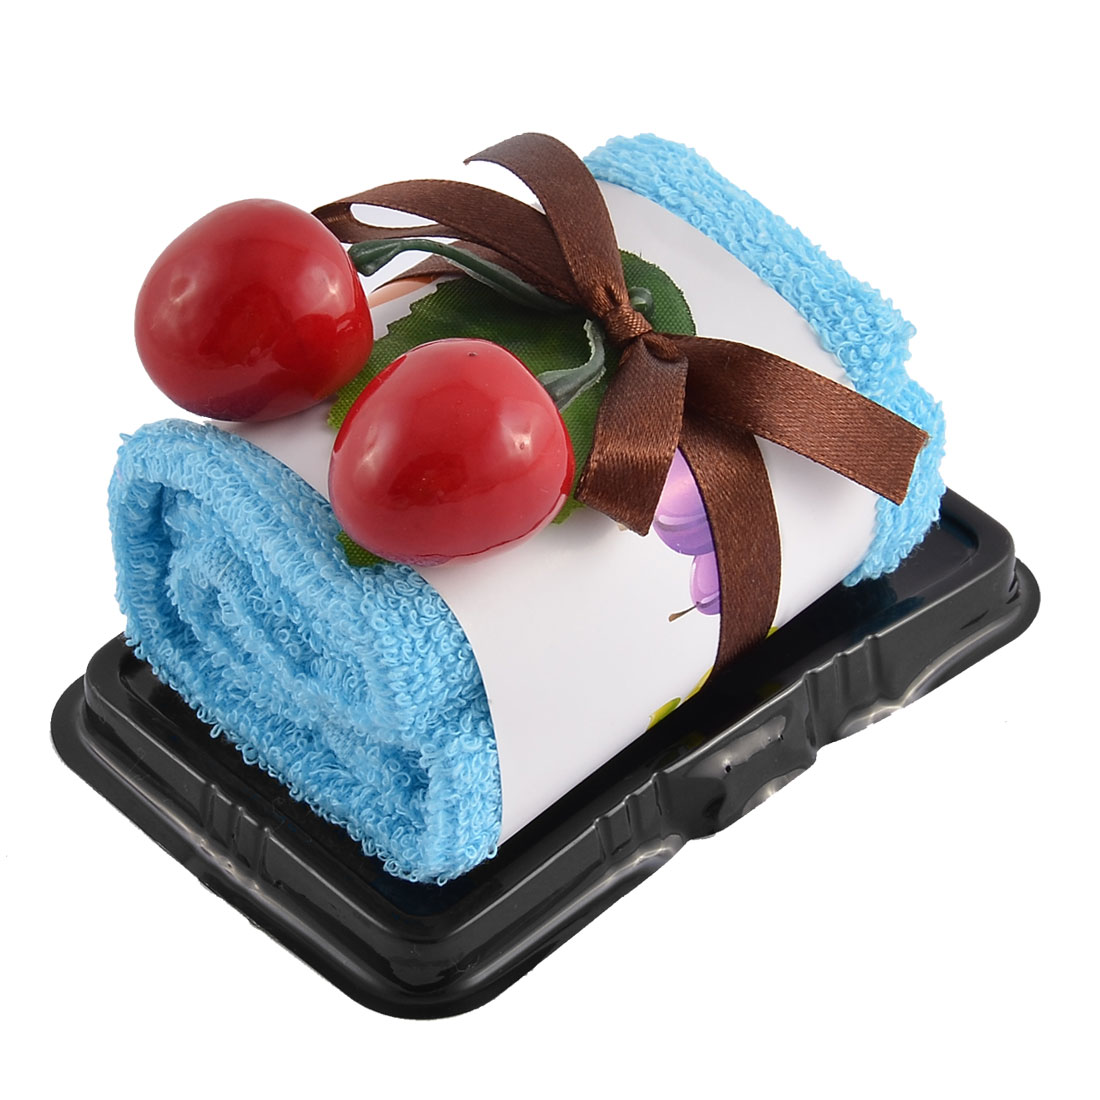 Plastic Simulated Cherry Decor Square Roll Cake Towel Gift Ornament Blue